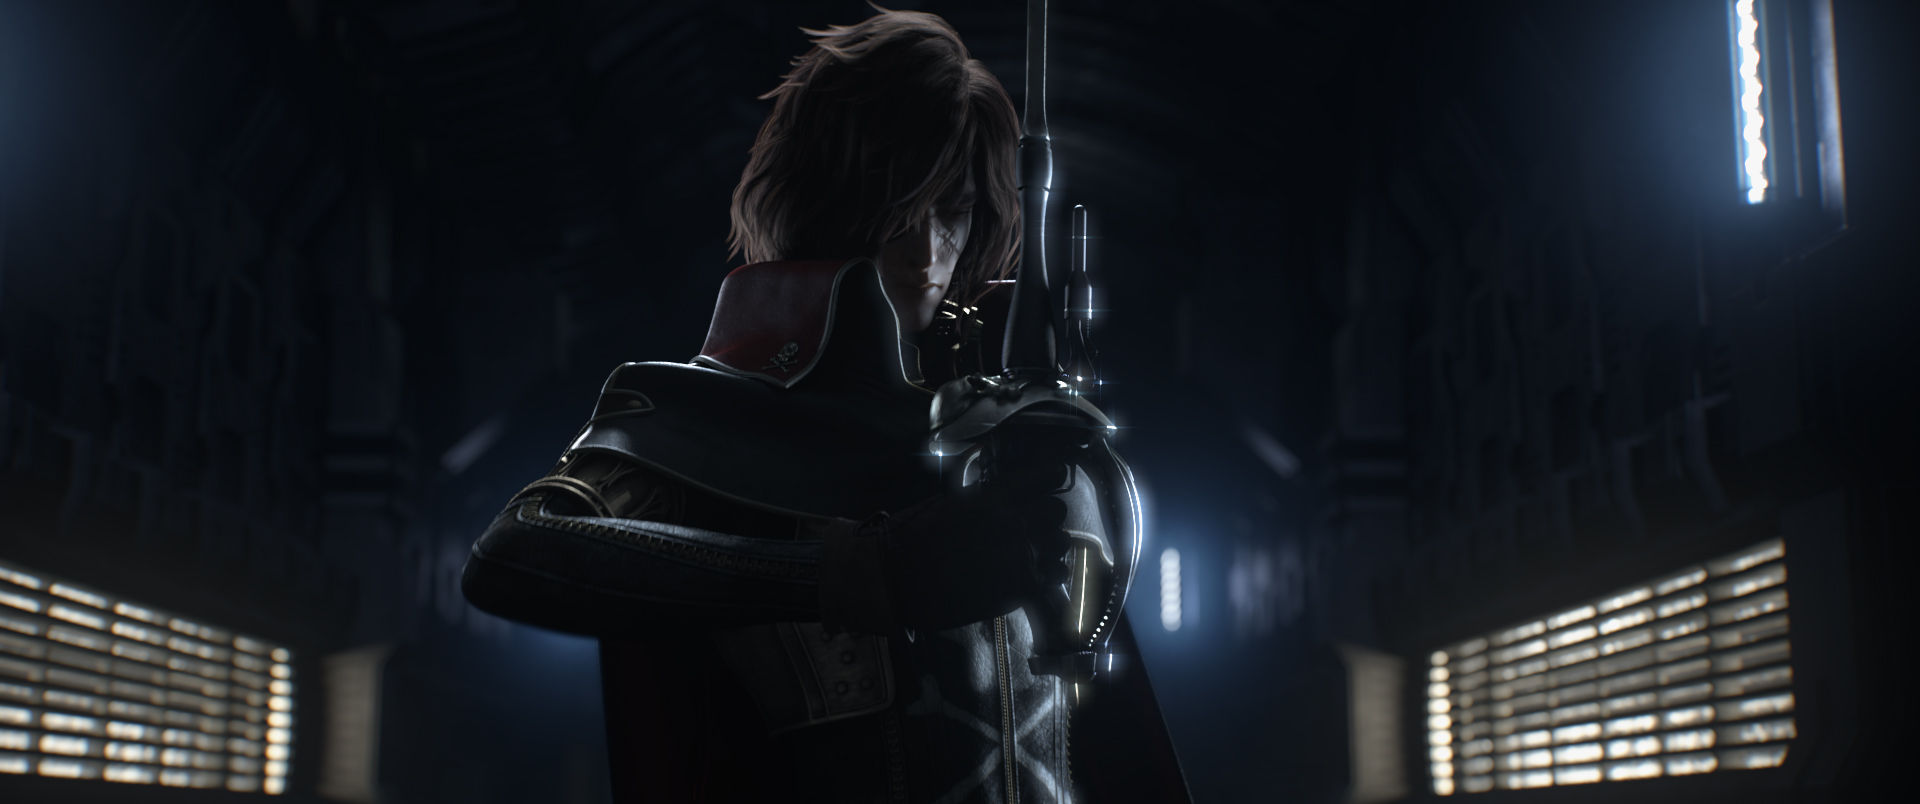 Space_Pirate_Captain_Harlock_Szenenbilder_01.72dpi